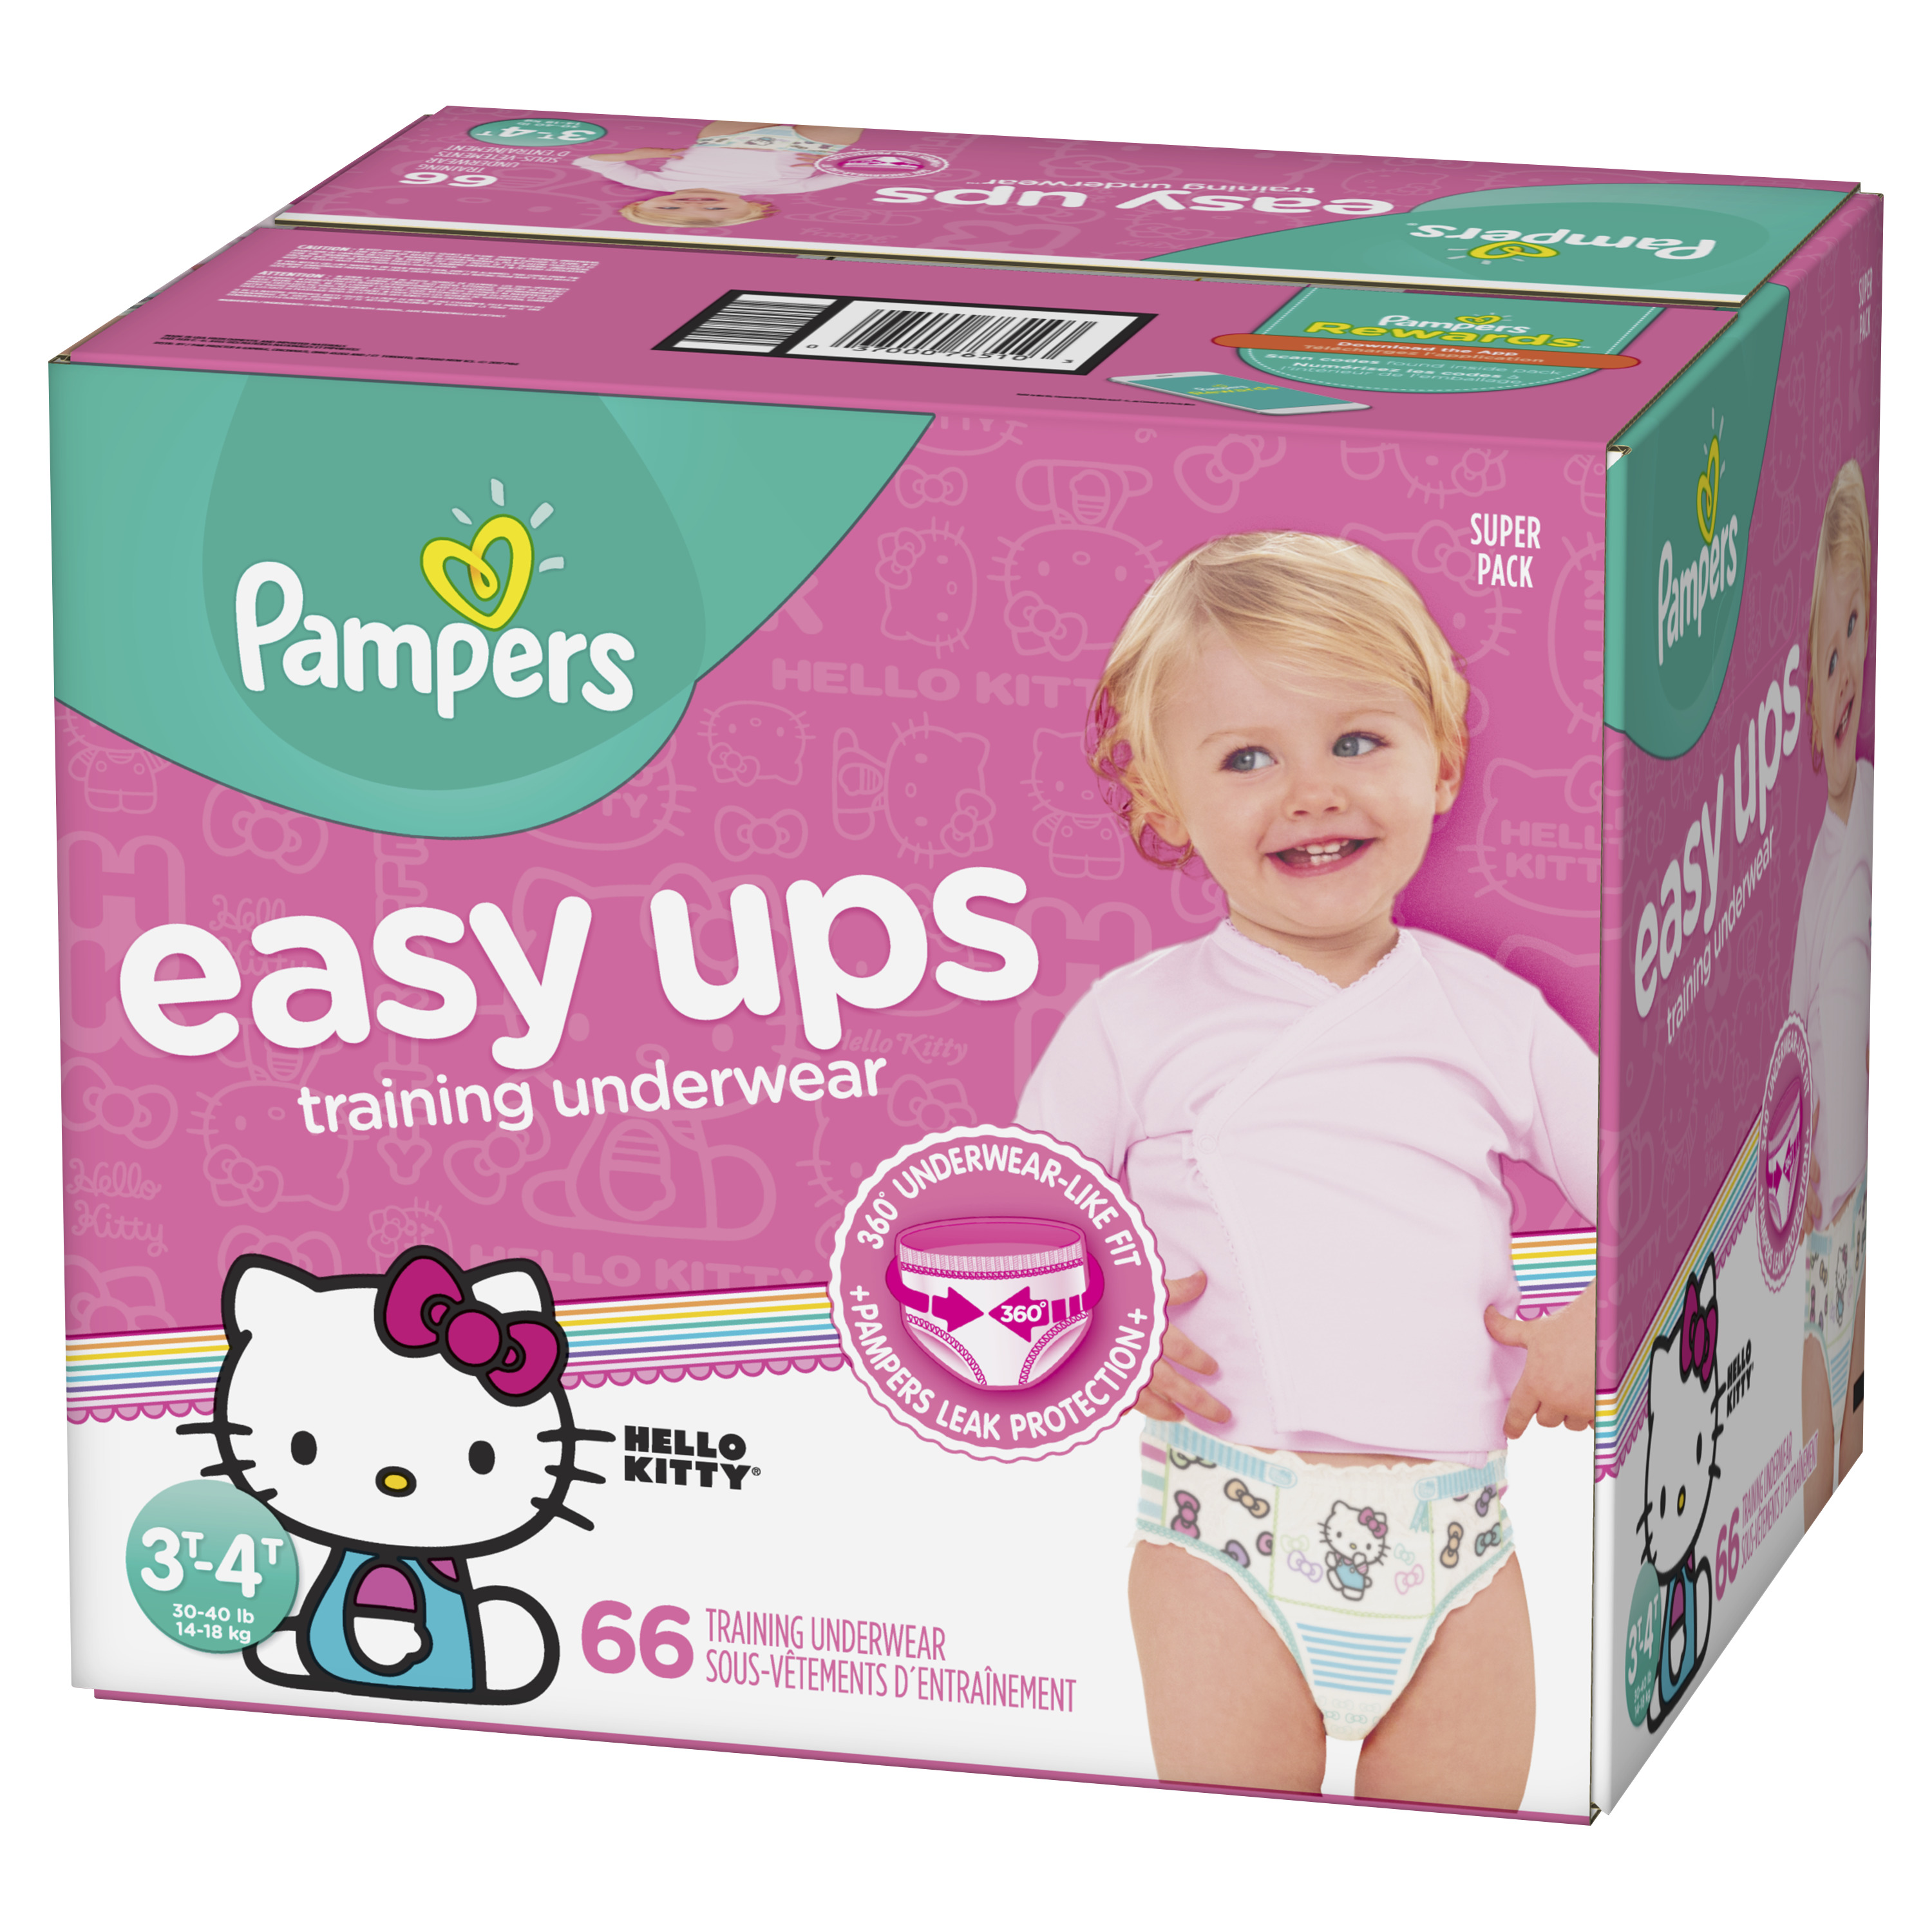 Pampers Easy Ups Training Underwear Girls Size 5 3T-4T 66 Count